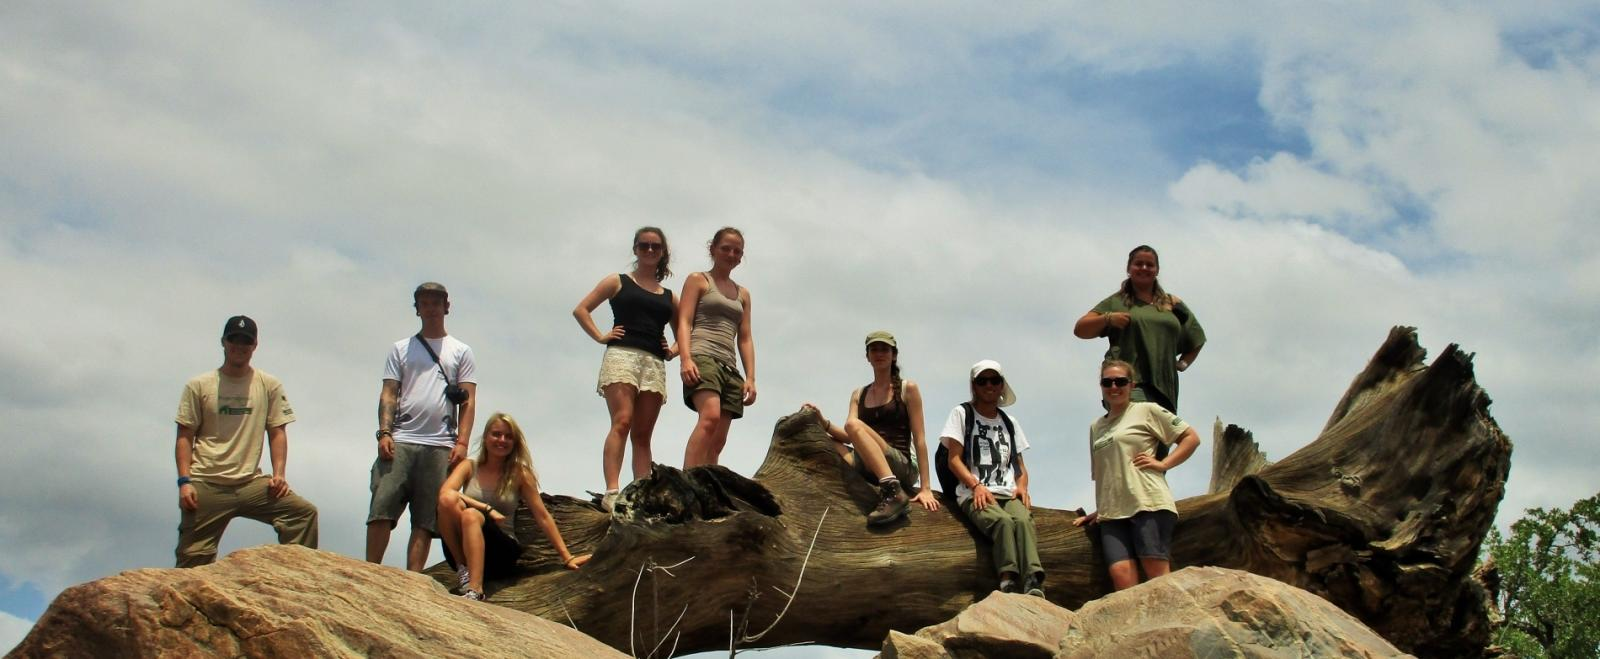 Projects Abroad volunteers at the Wild at Tuli game reserve in Botswana